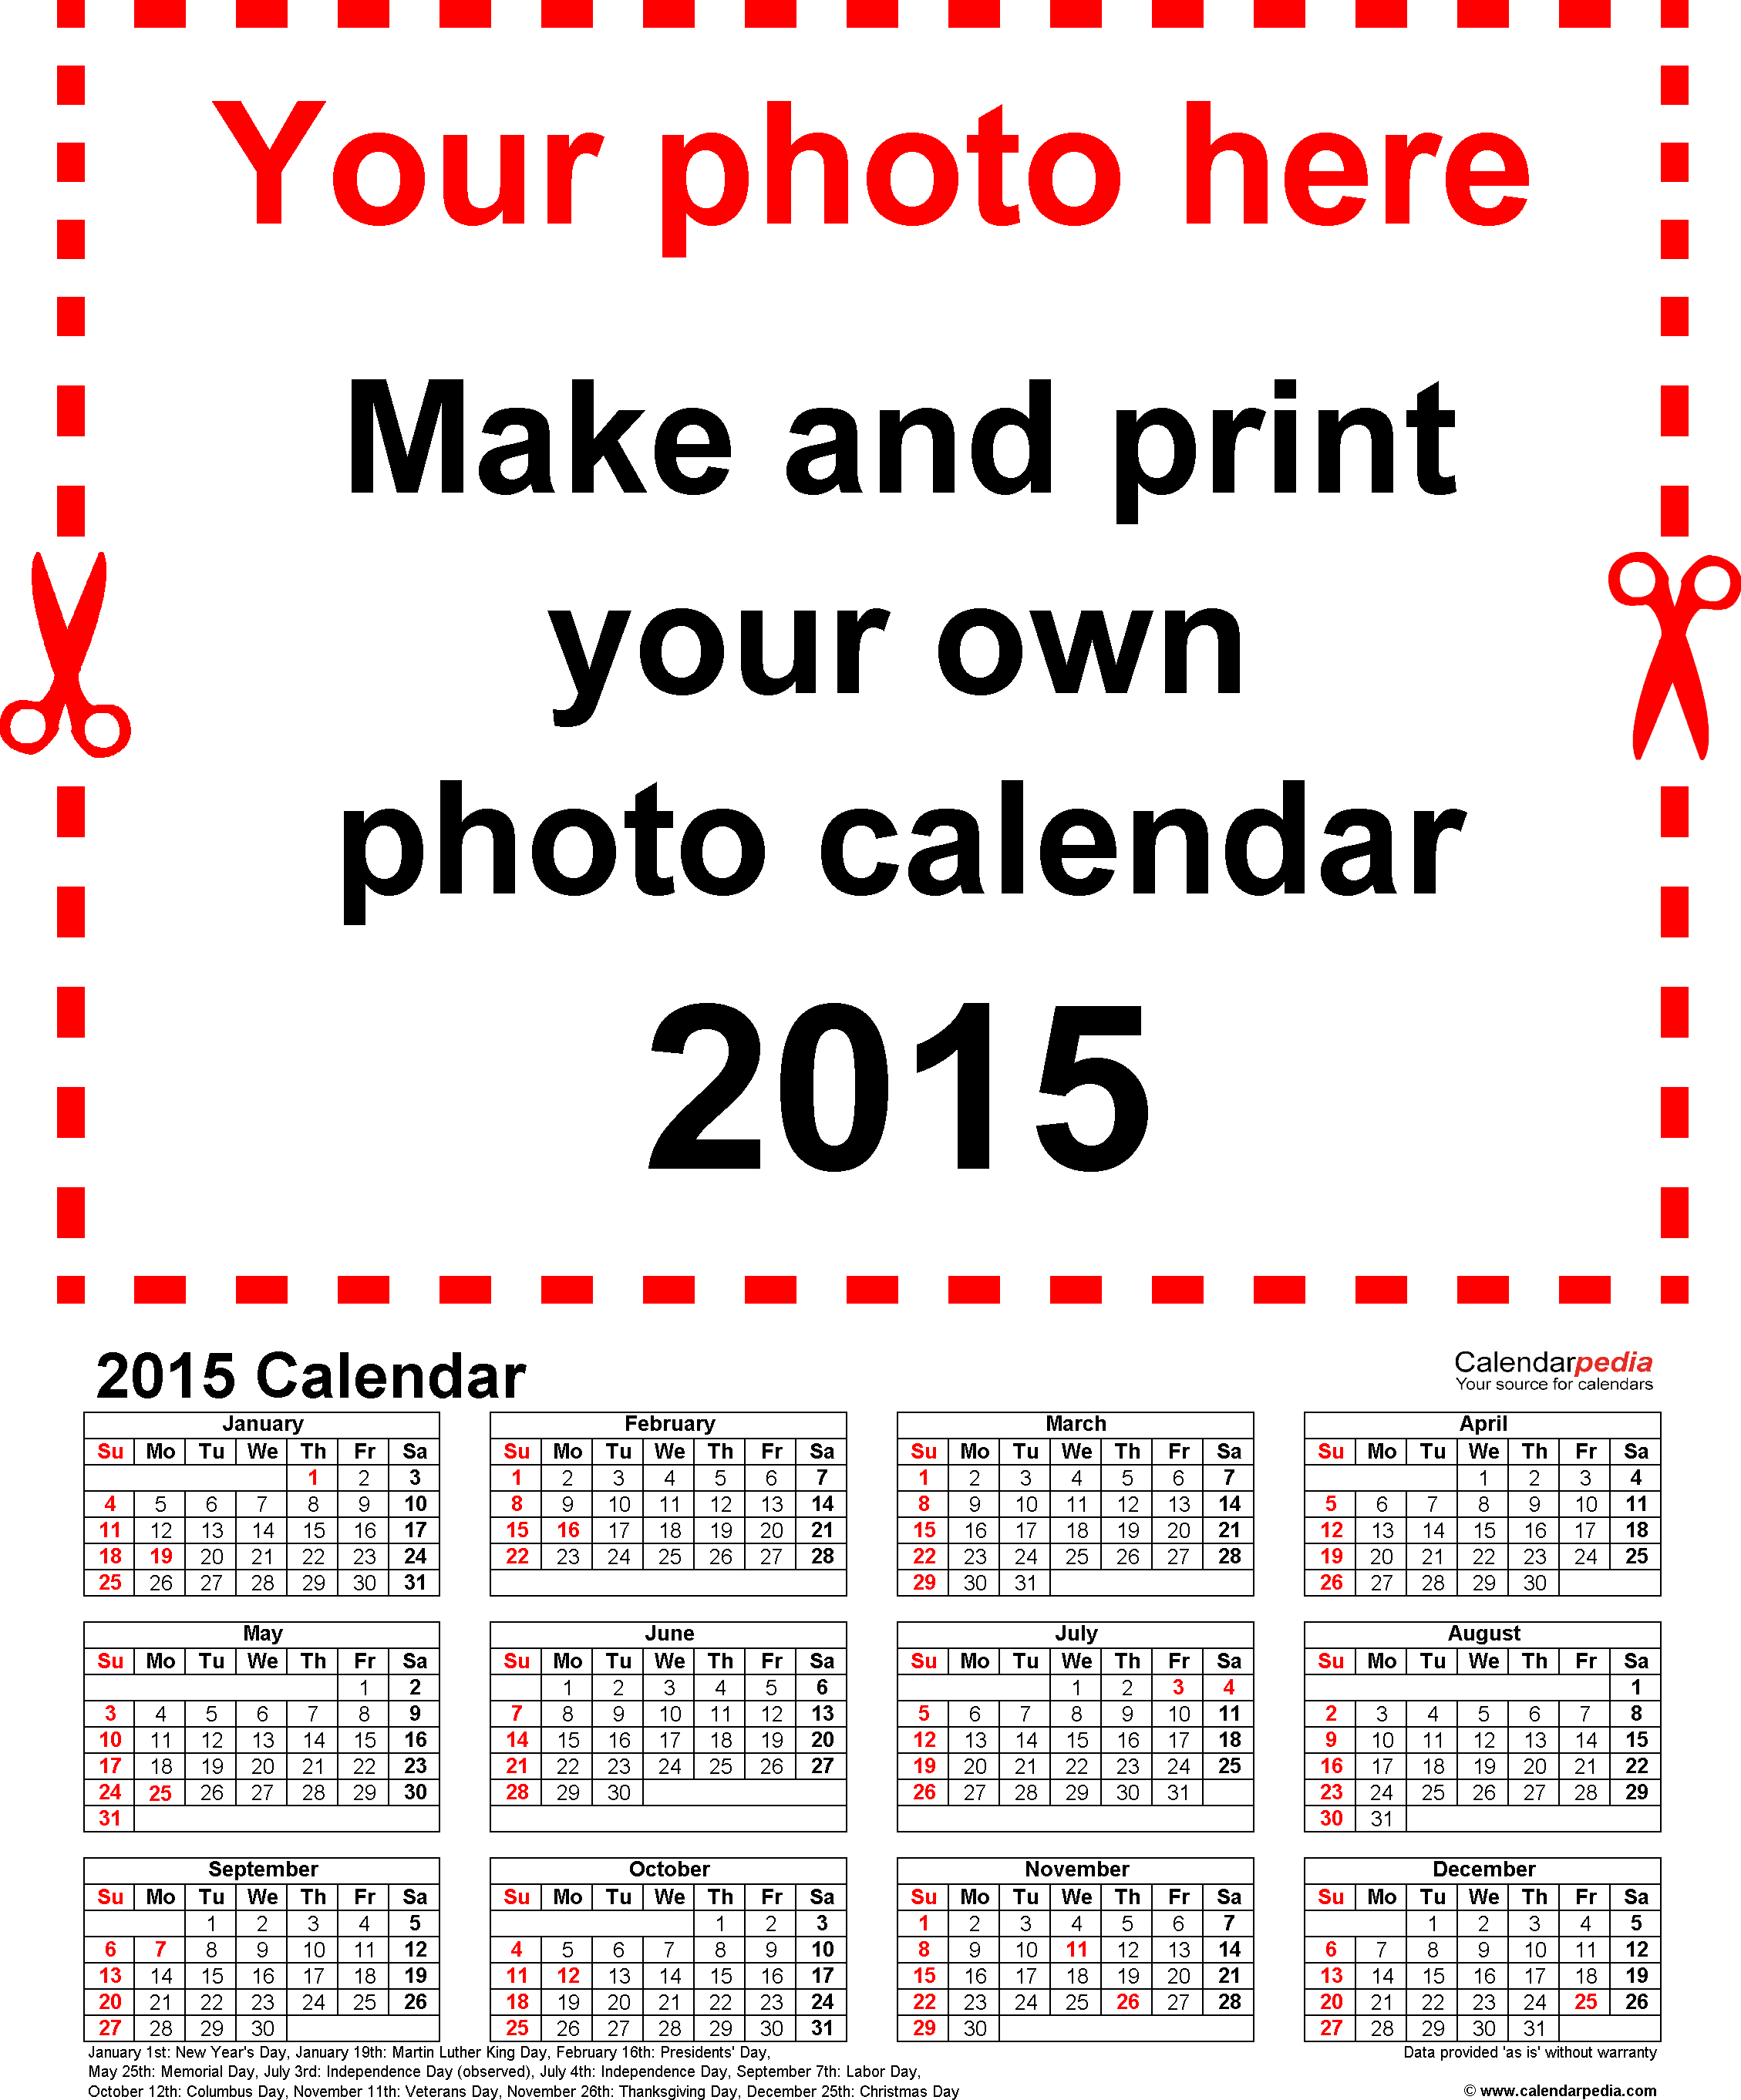 Photo calendar 2015 free printable word templates template 4 photo calendar 2015 for word portrait format whole year on one saigontimesfo